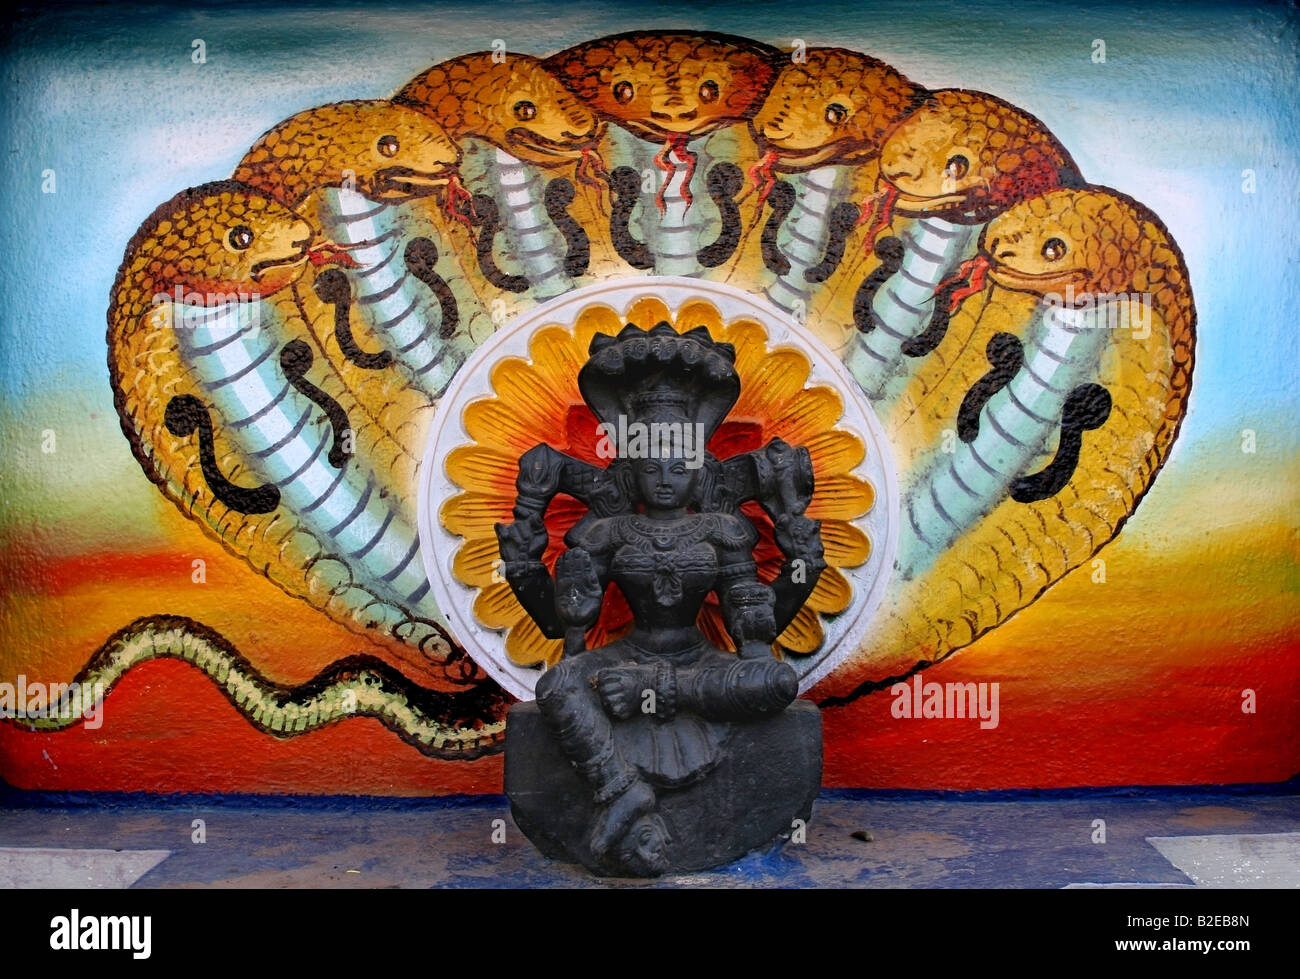 incorporation of snake cult in indian Nāga (iast: nāgá devanāgarī: नाग) is the sanskrit and pali word for a deity or  class of entity or being taking the form of a very great snake, specifically the king  cobra, found in the indian religions  the naga is incorporated extensively into  lao iconography, and features prominently in lao culture throughout the length  of.